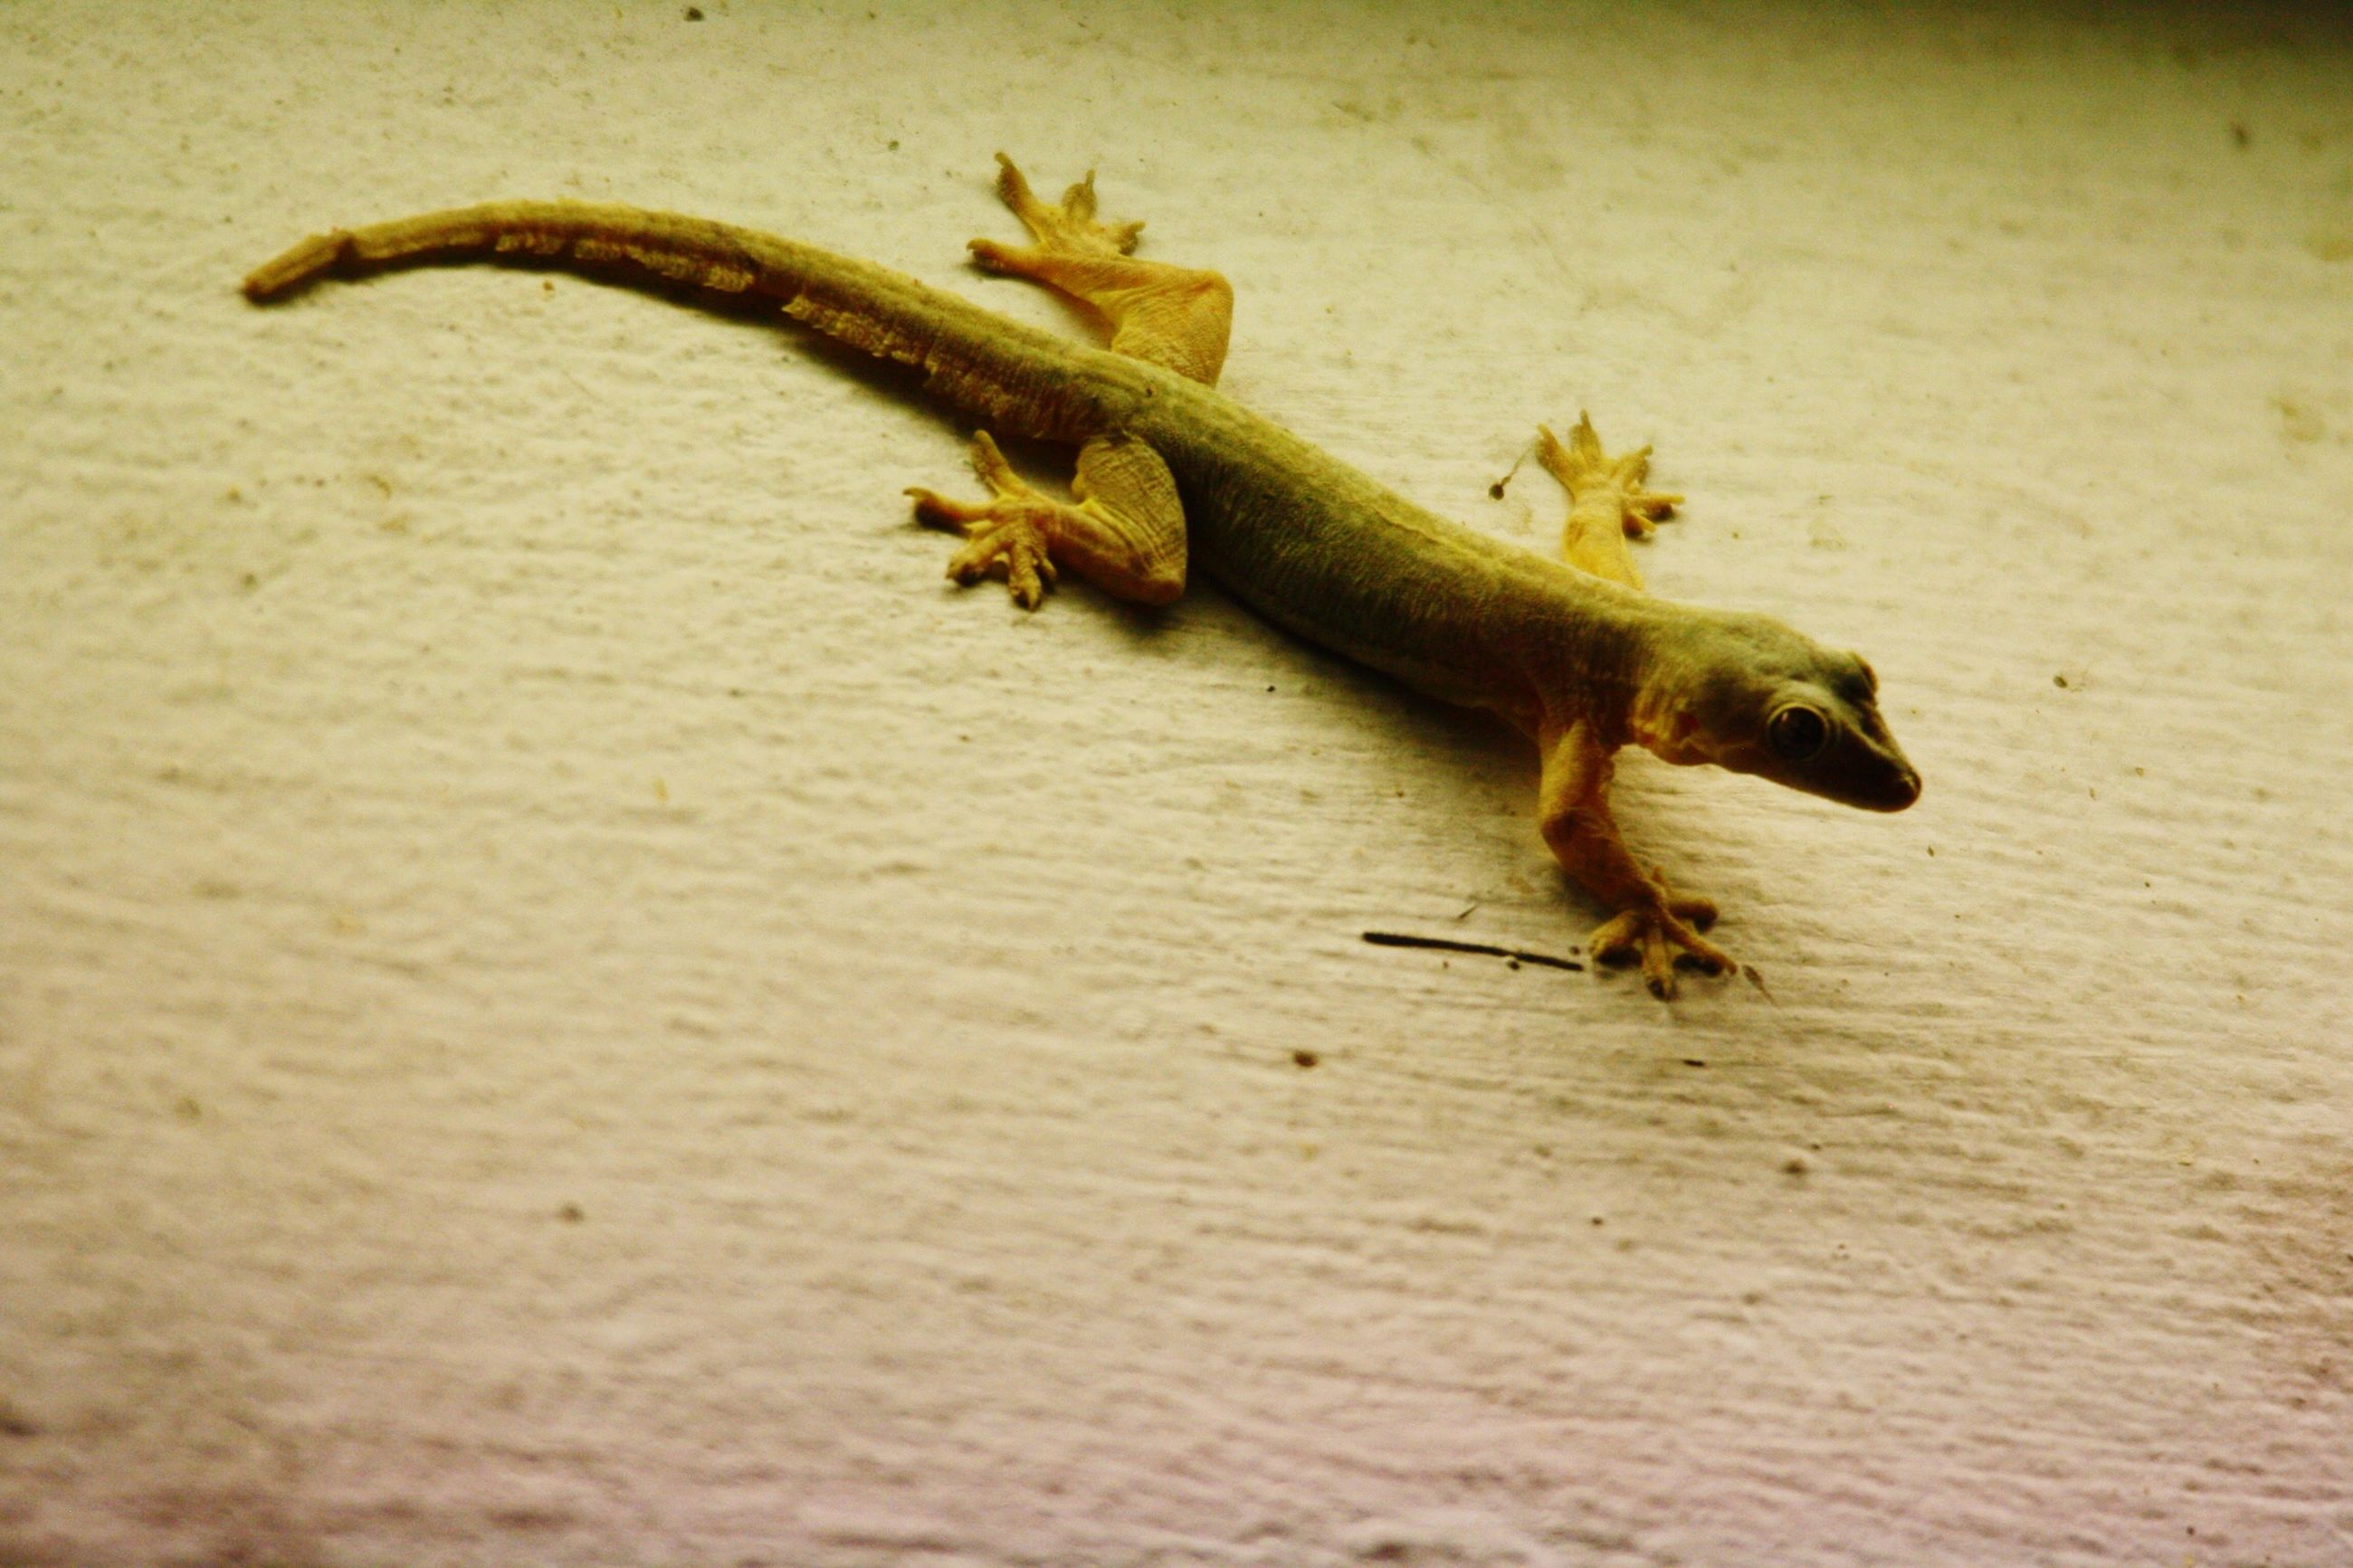 animal themes, one animal, animals in the wild, wildlife, lizard, full length, reptile, side view, no people, nature, high angle view, zoology, selective focus, indoors, day, close-up, mammal, vertebrate, two animals